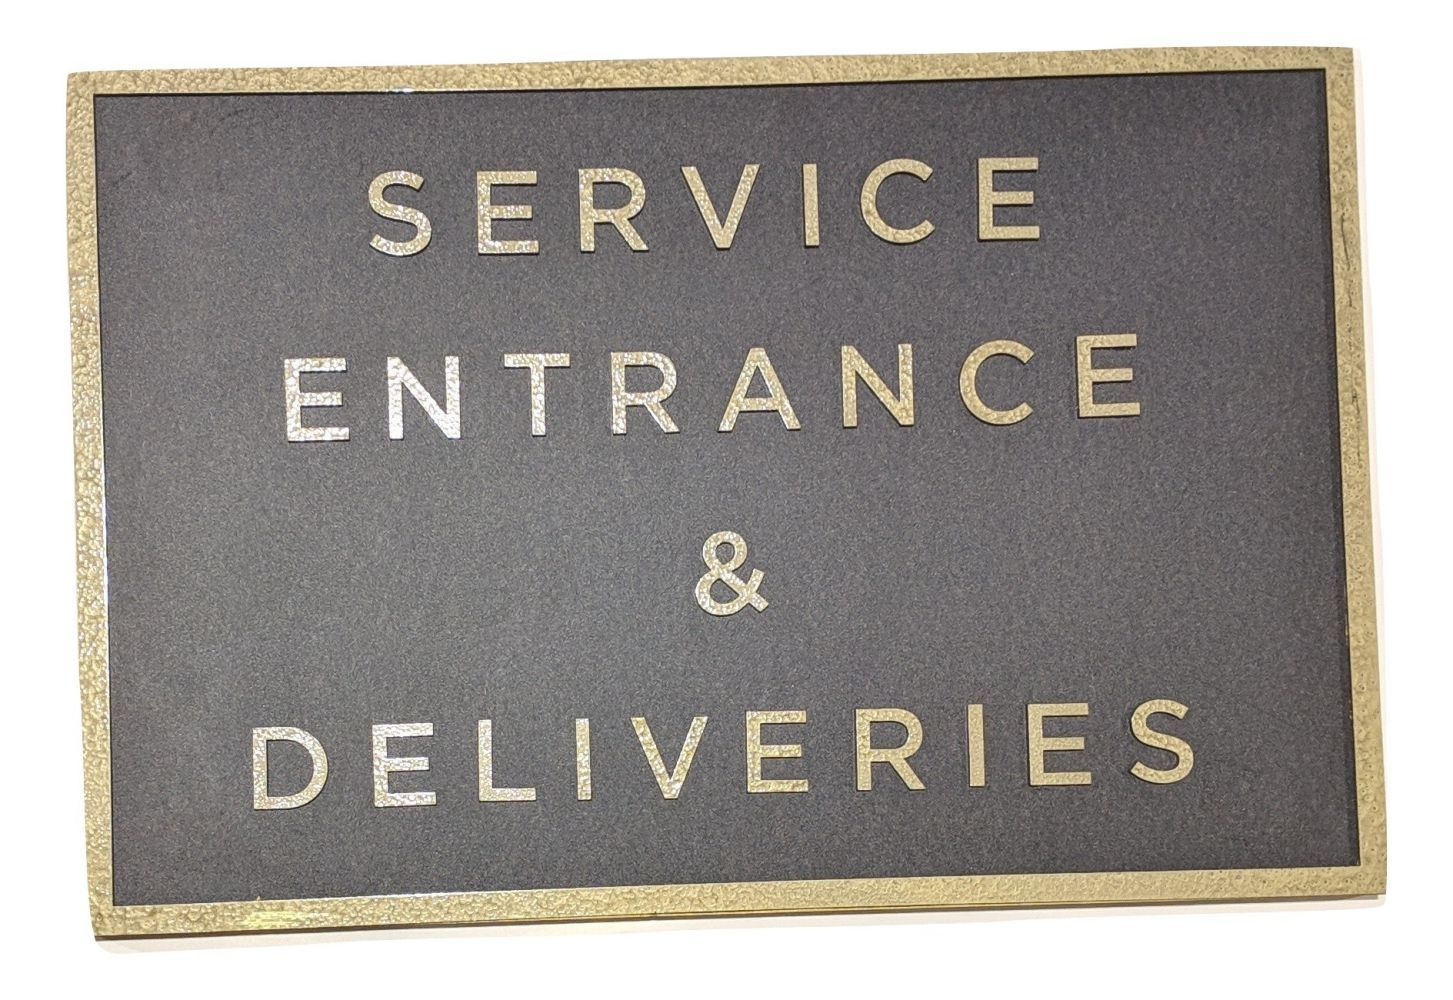 You're The Worst: Service Entrance & Deliveries' Sign